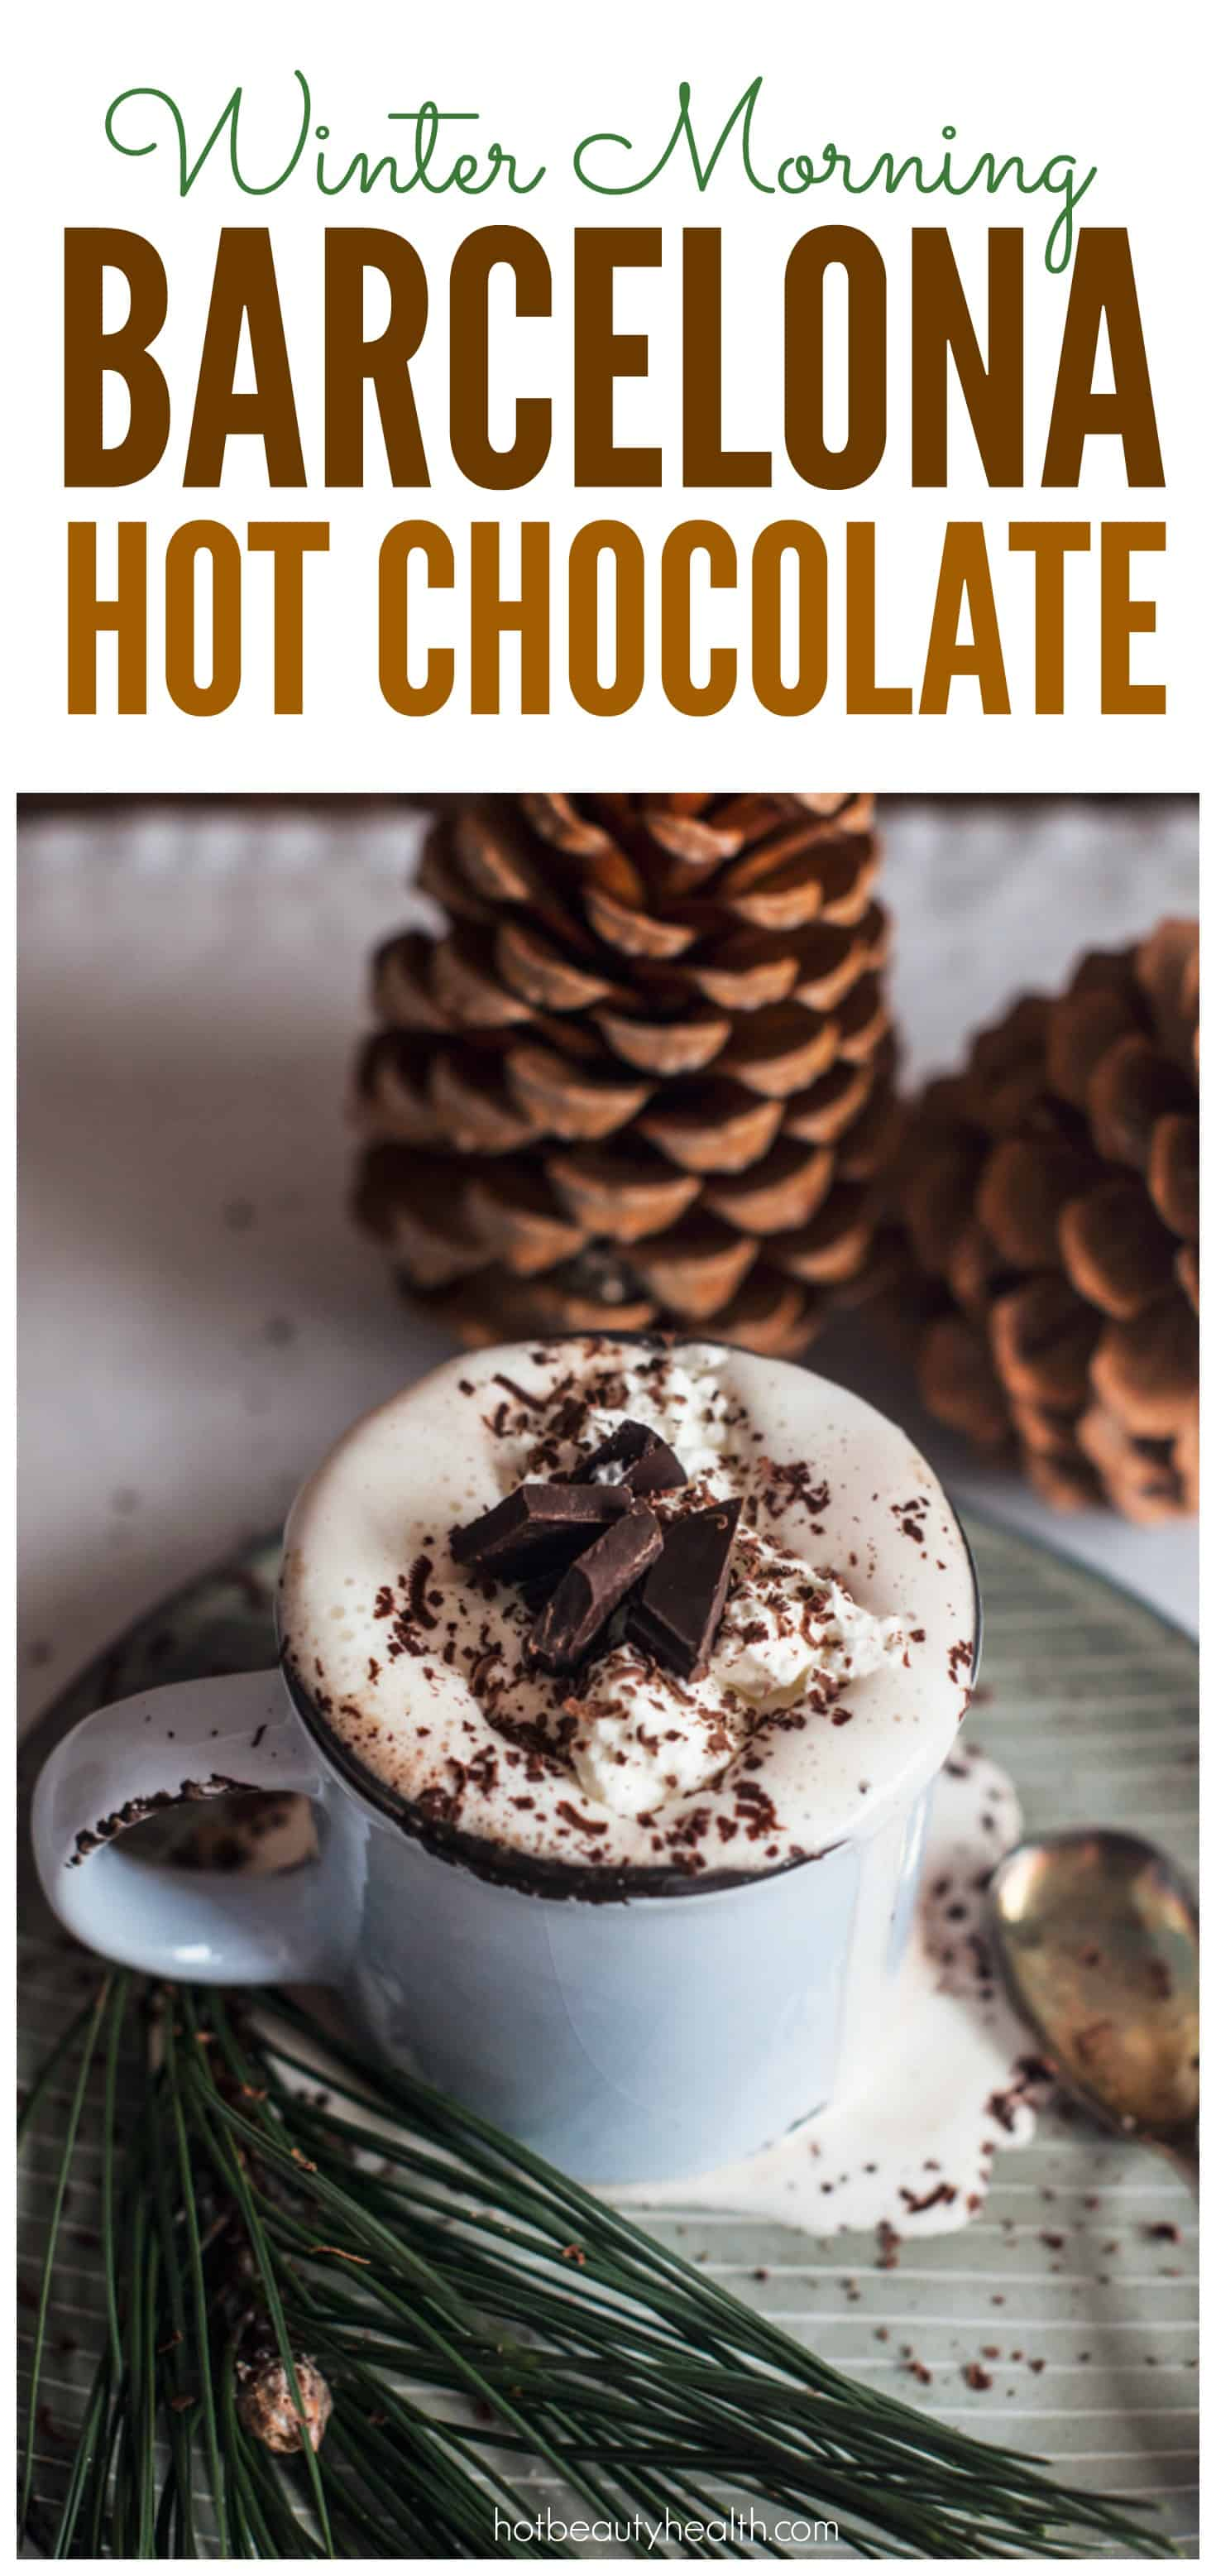 Looking for warm winter morning drink ideas? This Barcelona Hot Chocolate recipe is so simple and delicious, and will keep you and the whole family cozy this cold season. Click here for the recipe!